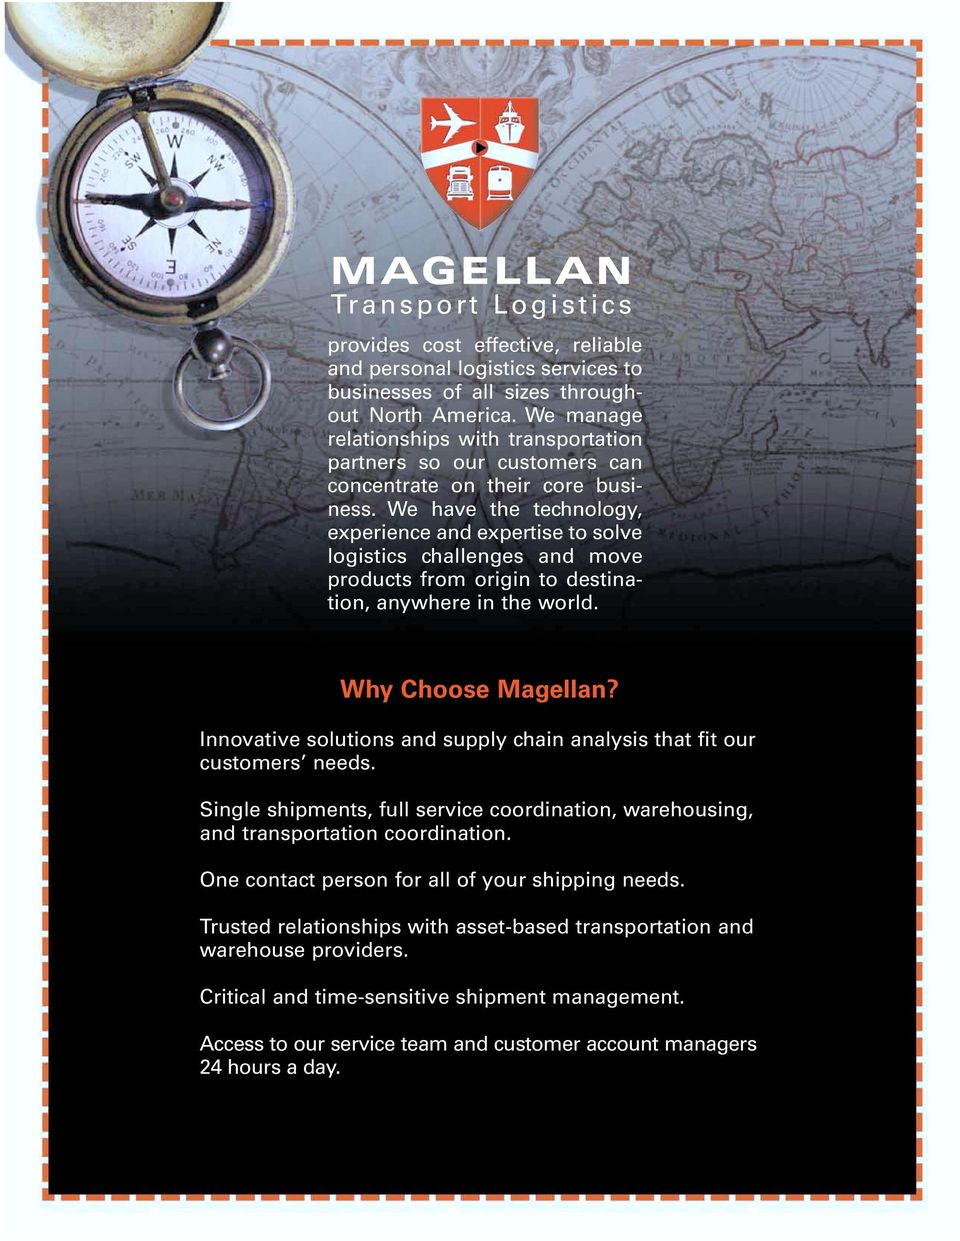 We have the technology, experience and expertise to solve logistics challenges and move products from origin to destination, anywhere in the world. Why Choose Magellan?